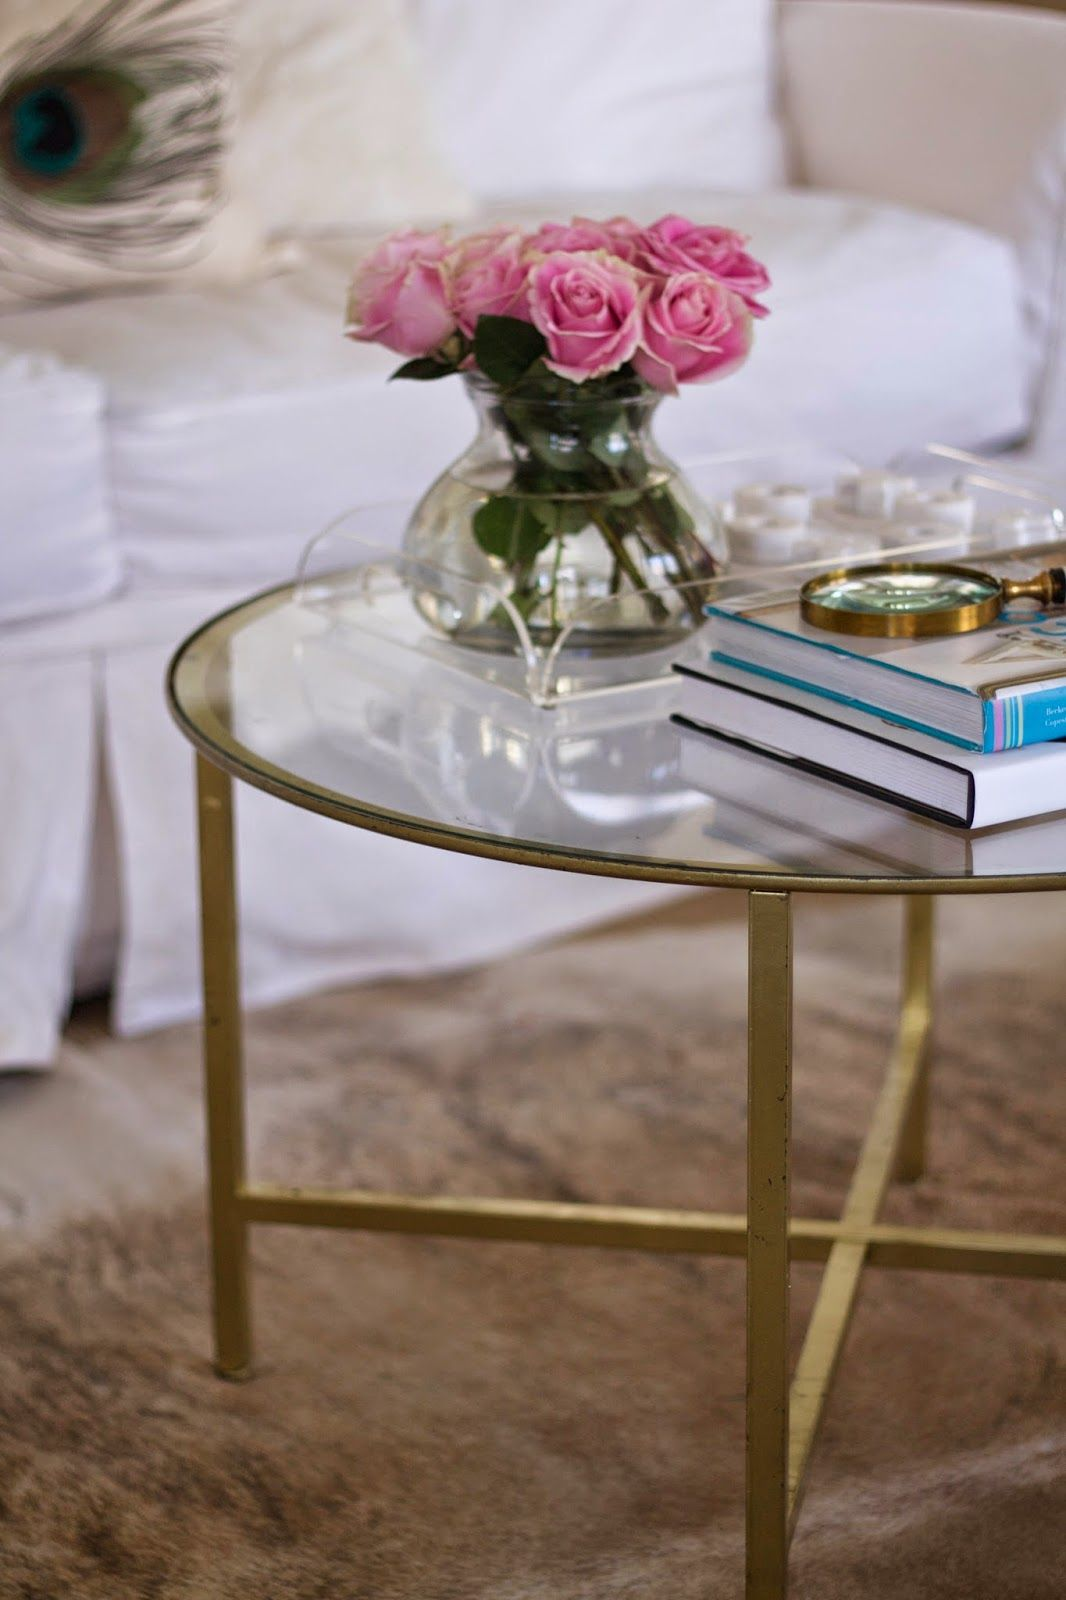 Ikea Coffee Table Hack Park Avenue Favorites Pinterest Ikea Coffee Table Coffee And Ikea Hack